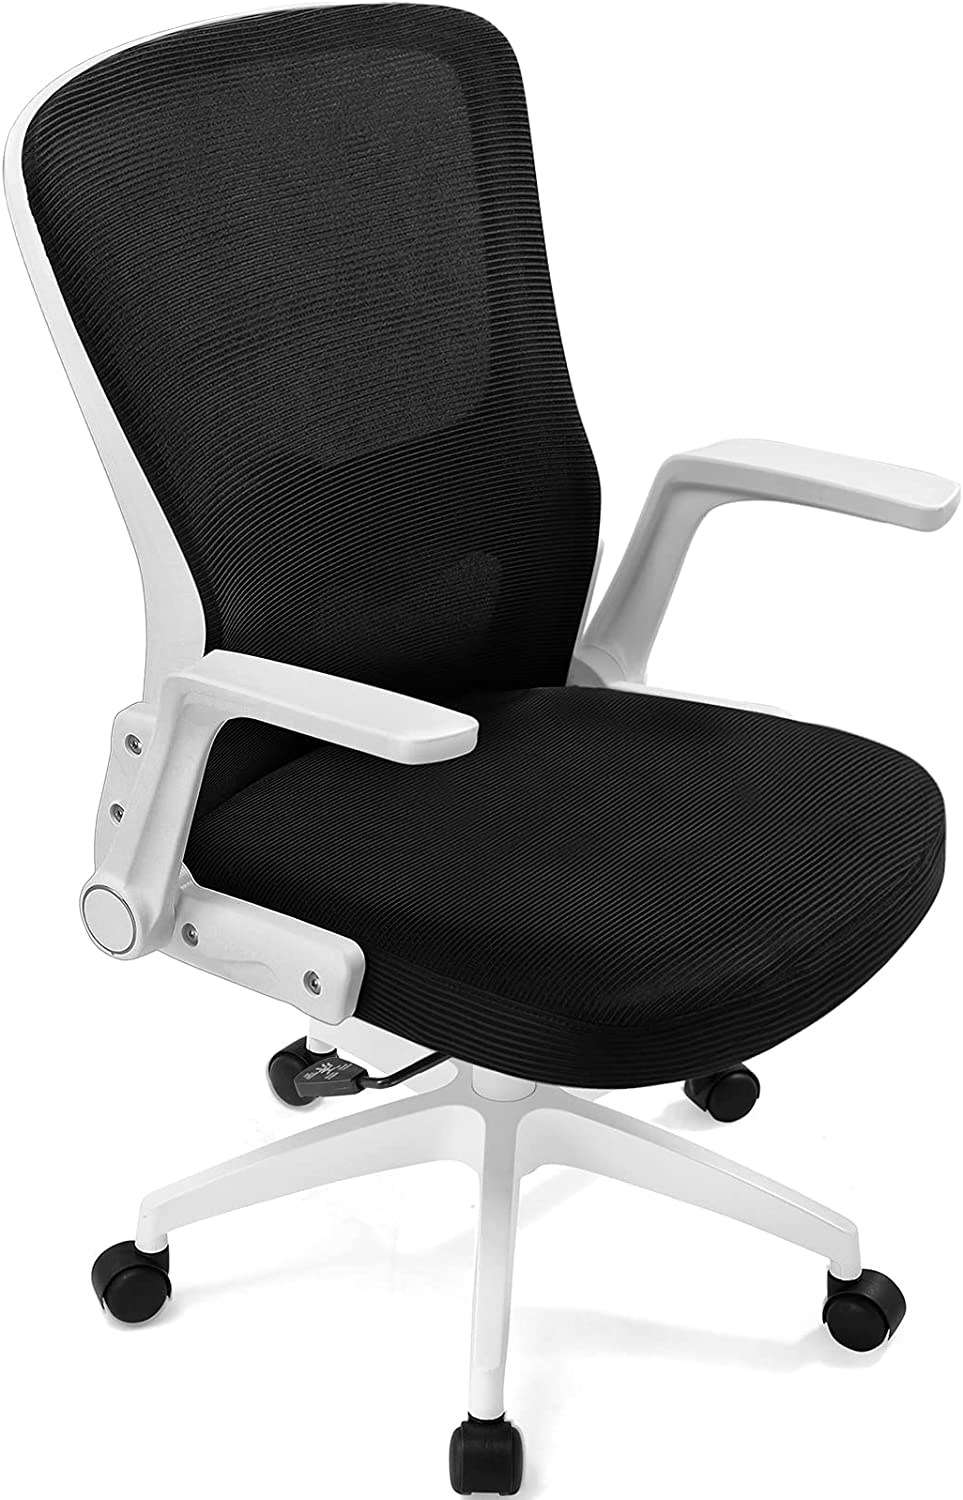 Lucklife Ergonomic Office Chair Modern Outlet ☆ Free Shipping Desk Home Executive OFFicial site